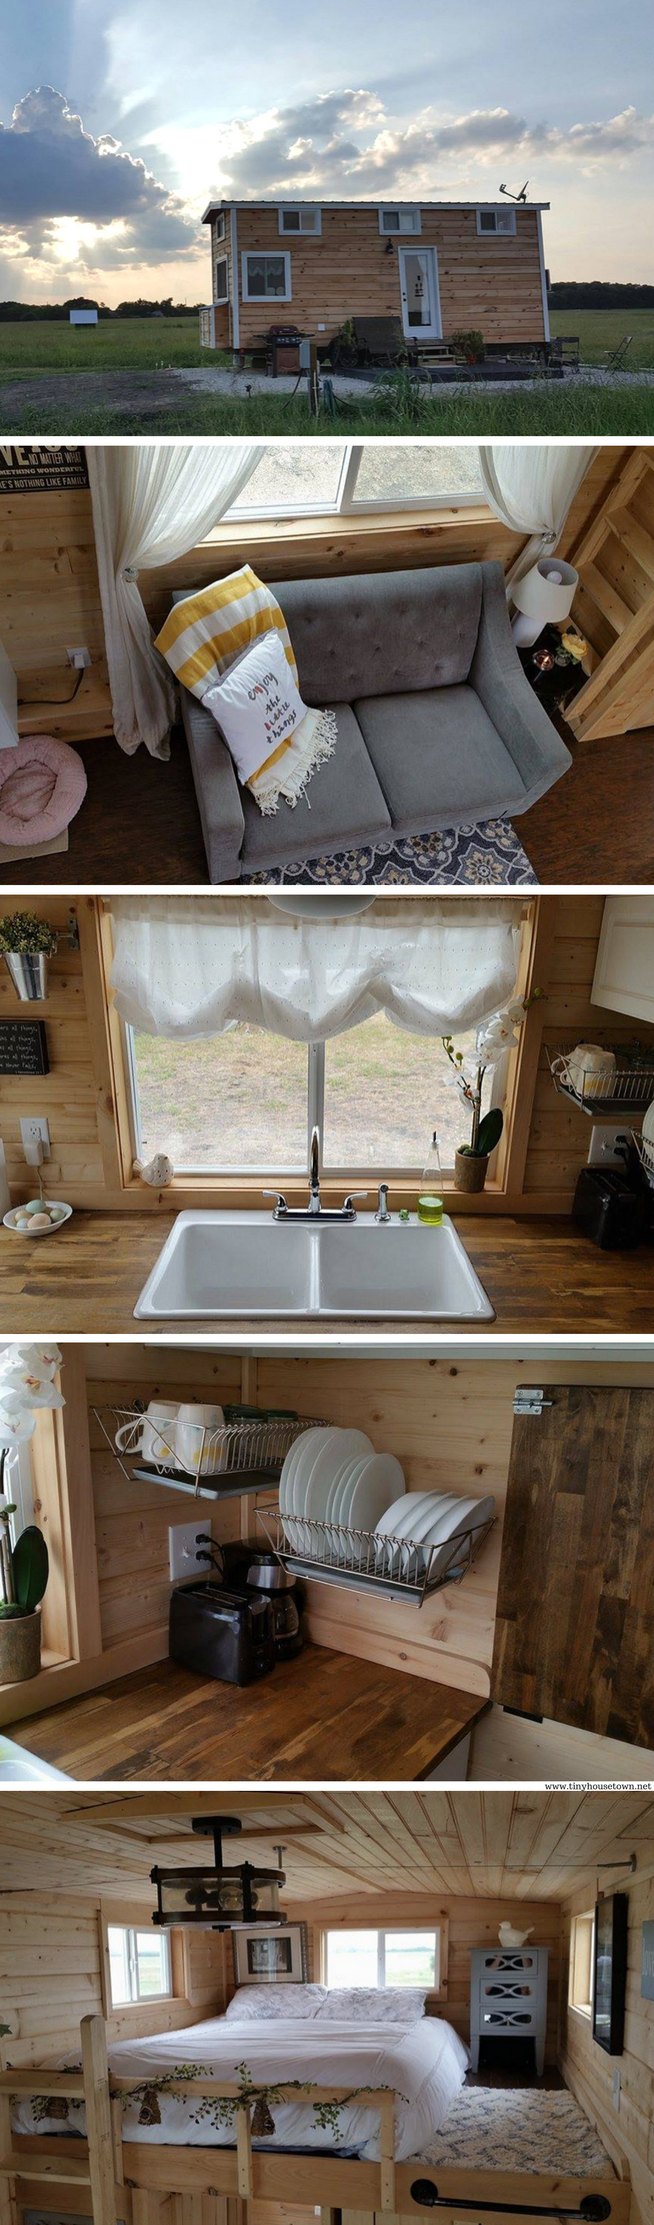 A tiny house in Texas The 340 sq ft home was featured on HGTVs